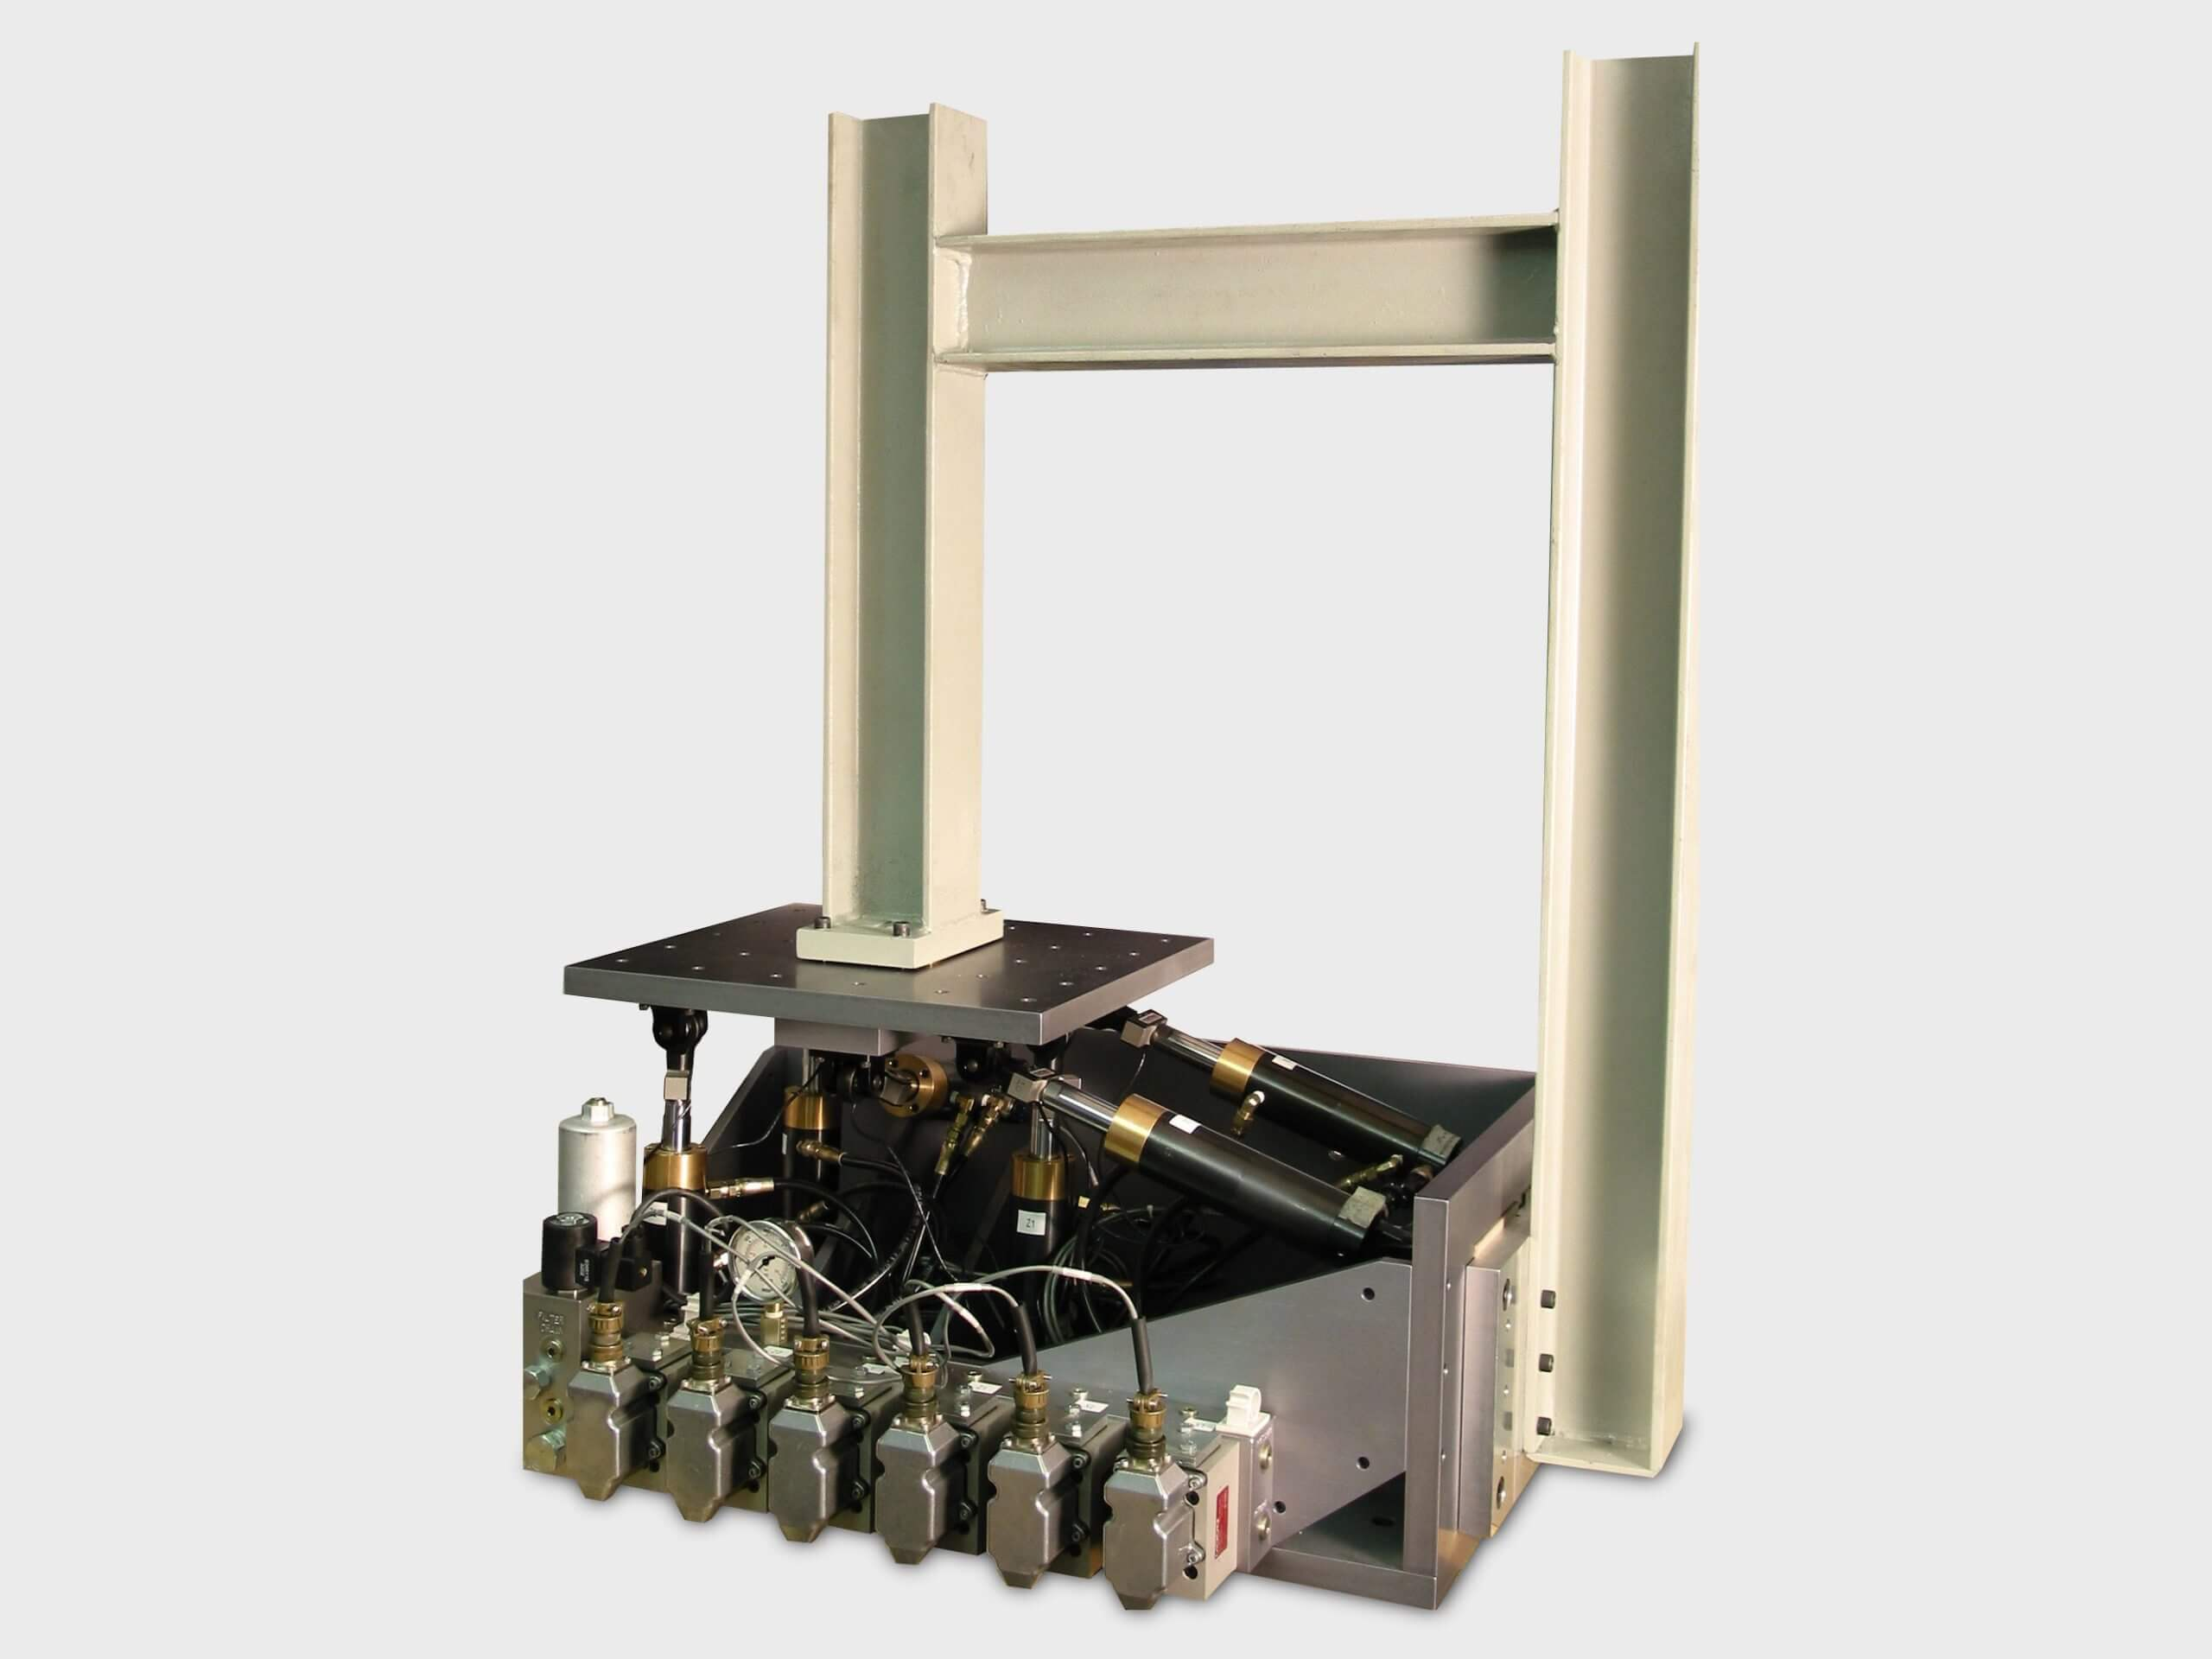 Loading Boundary Conditions Boxes mini